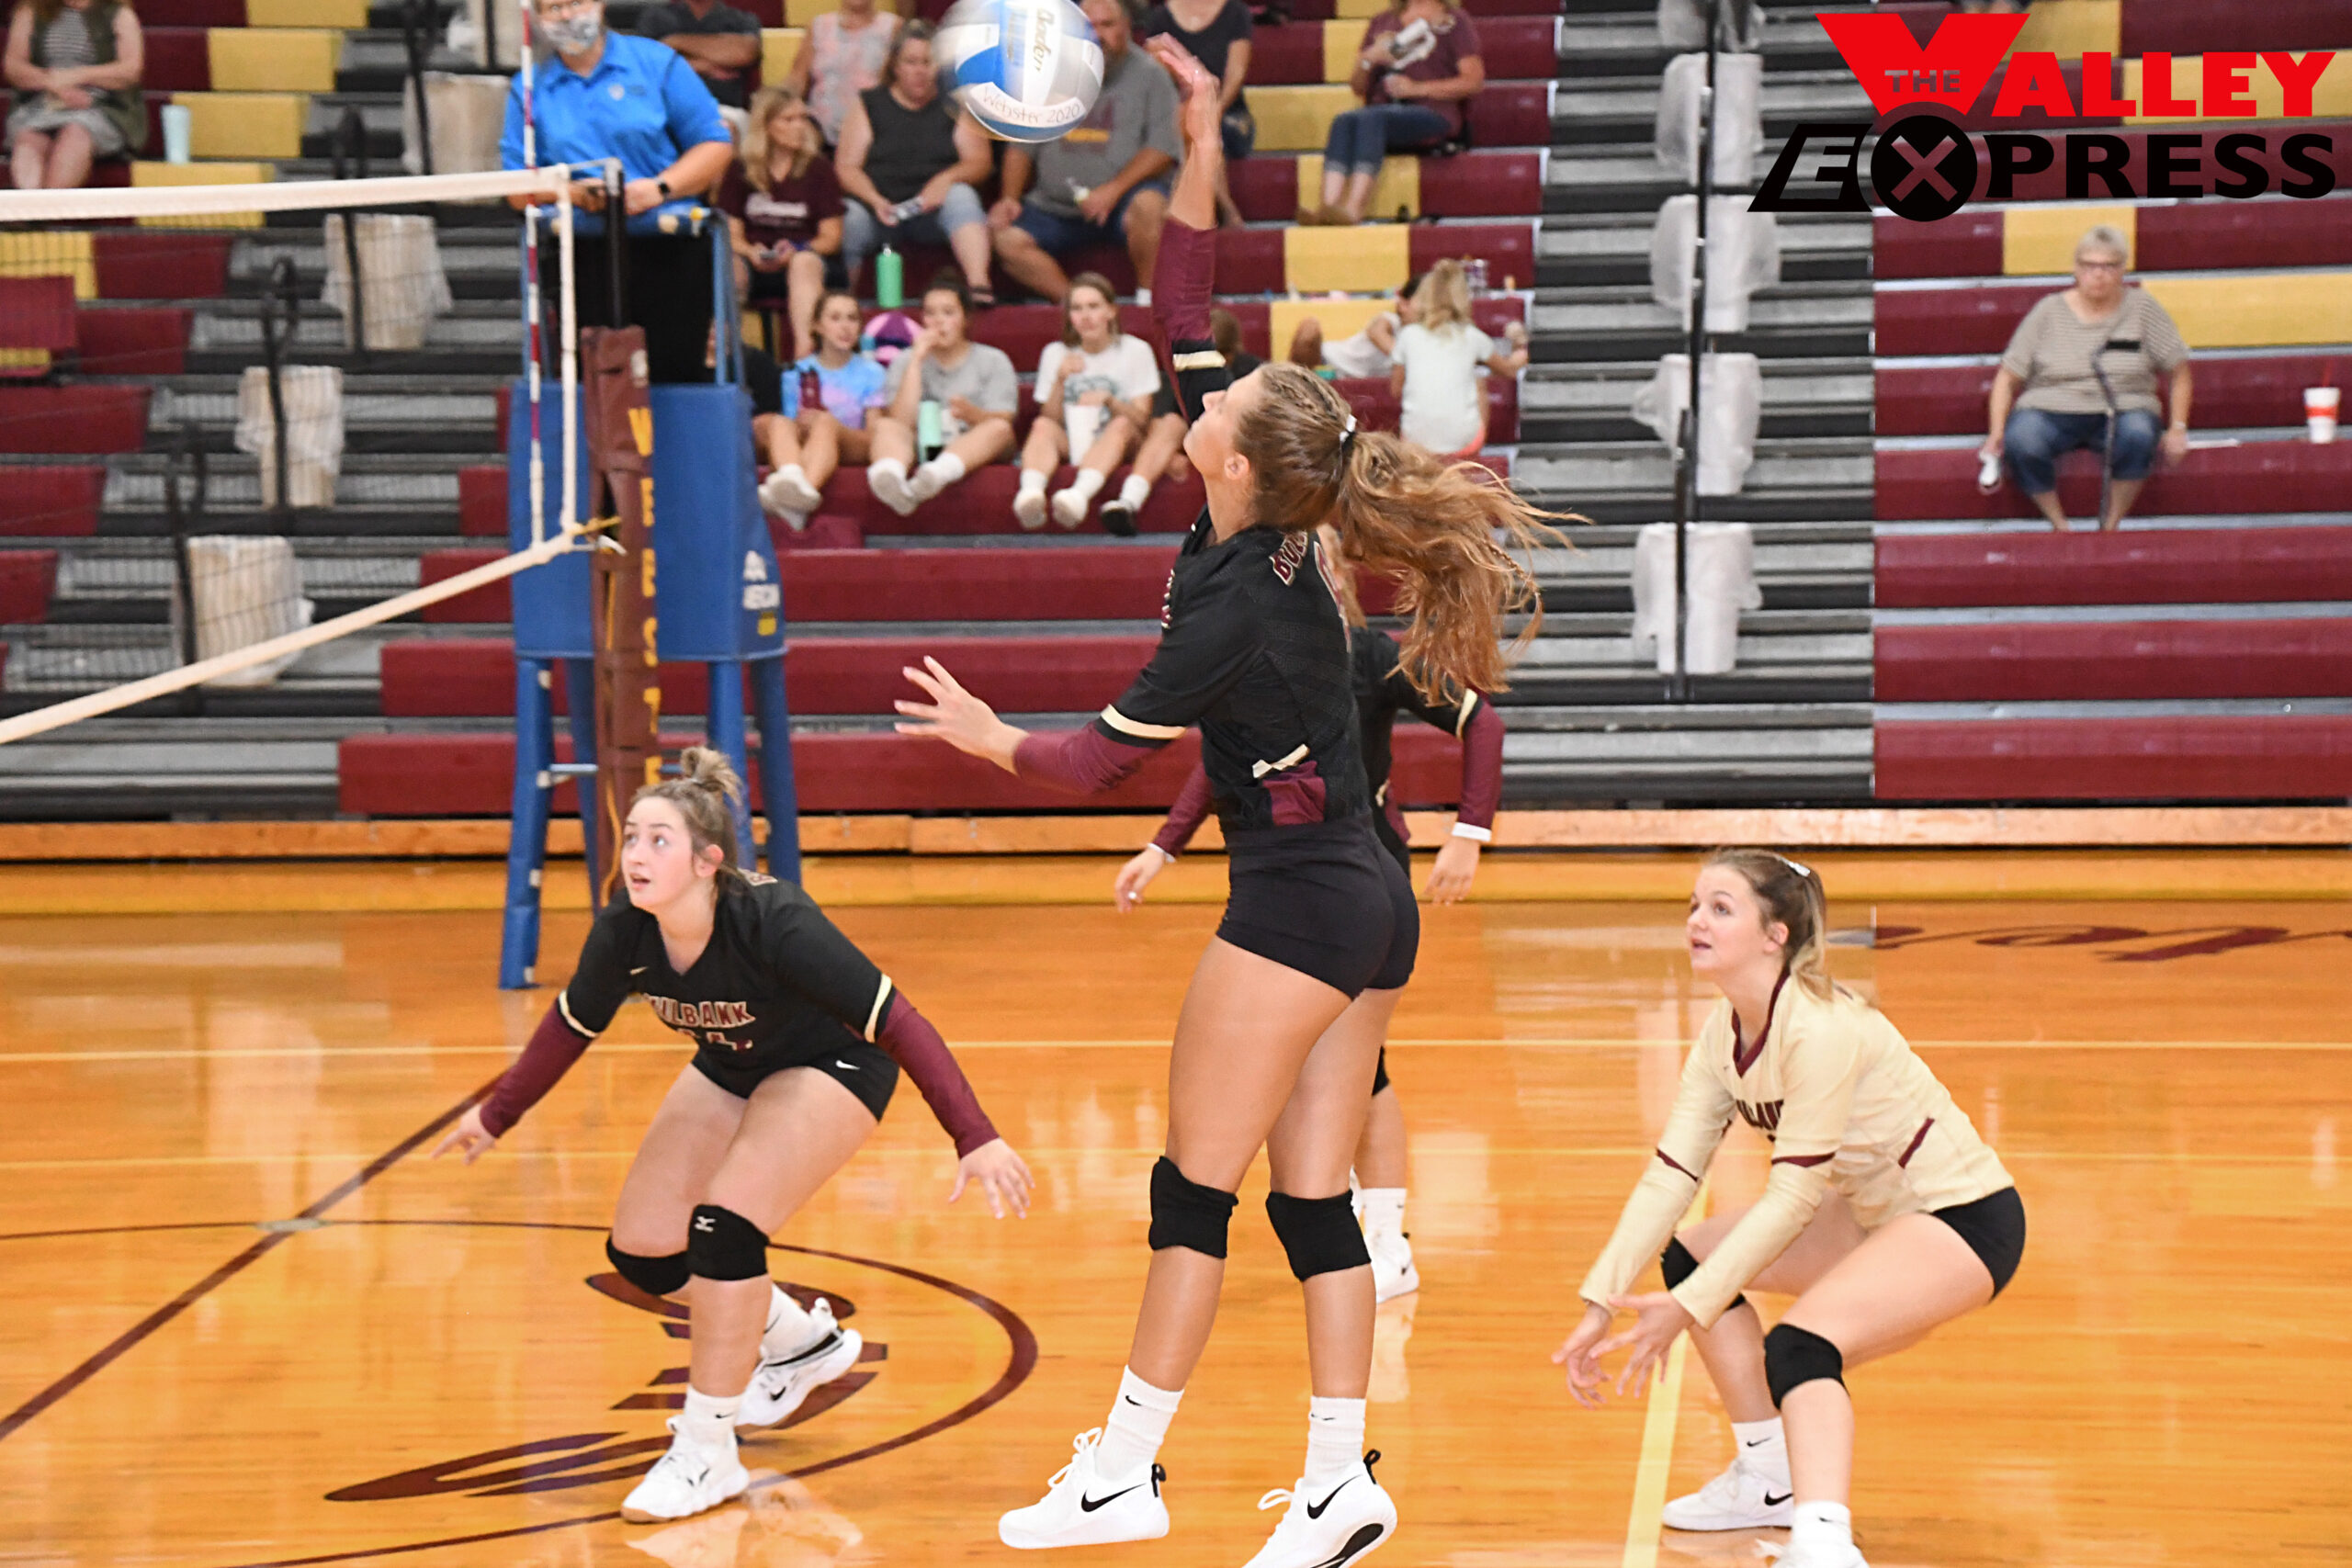 Lady Bulldogs Lose Volleyball Opener to Webster